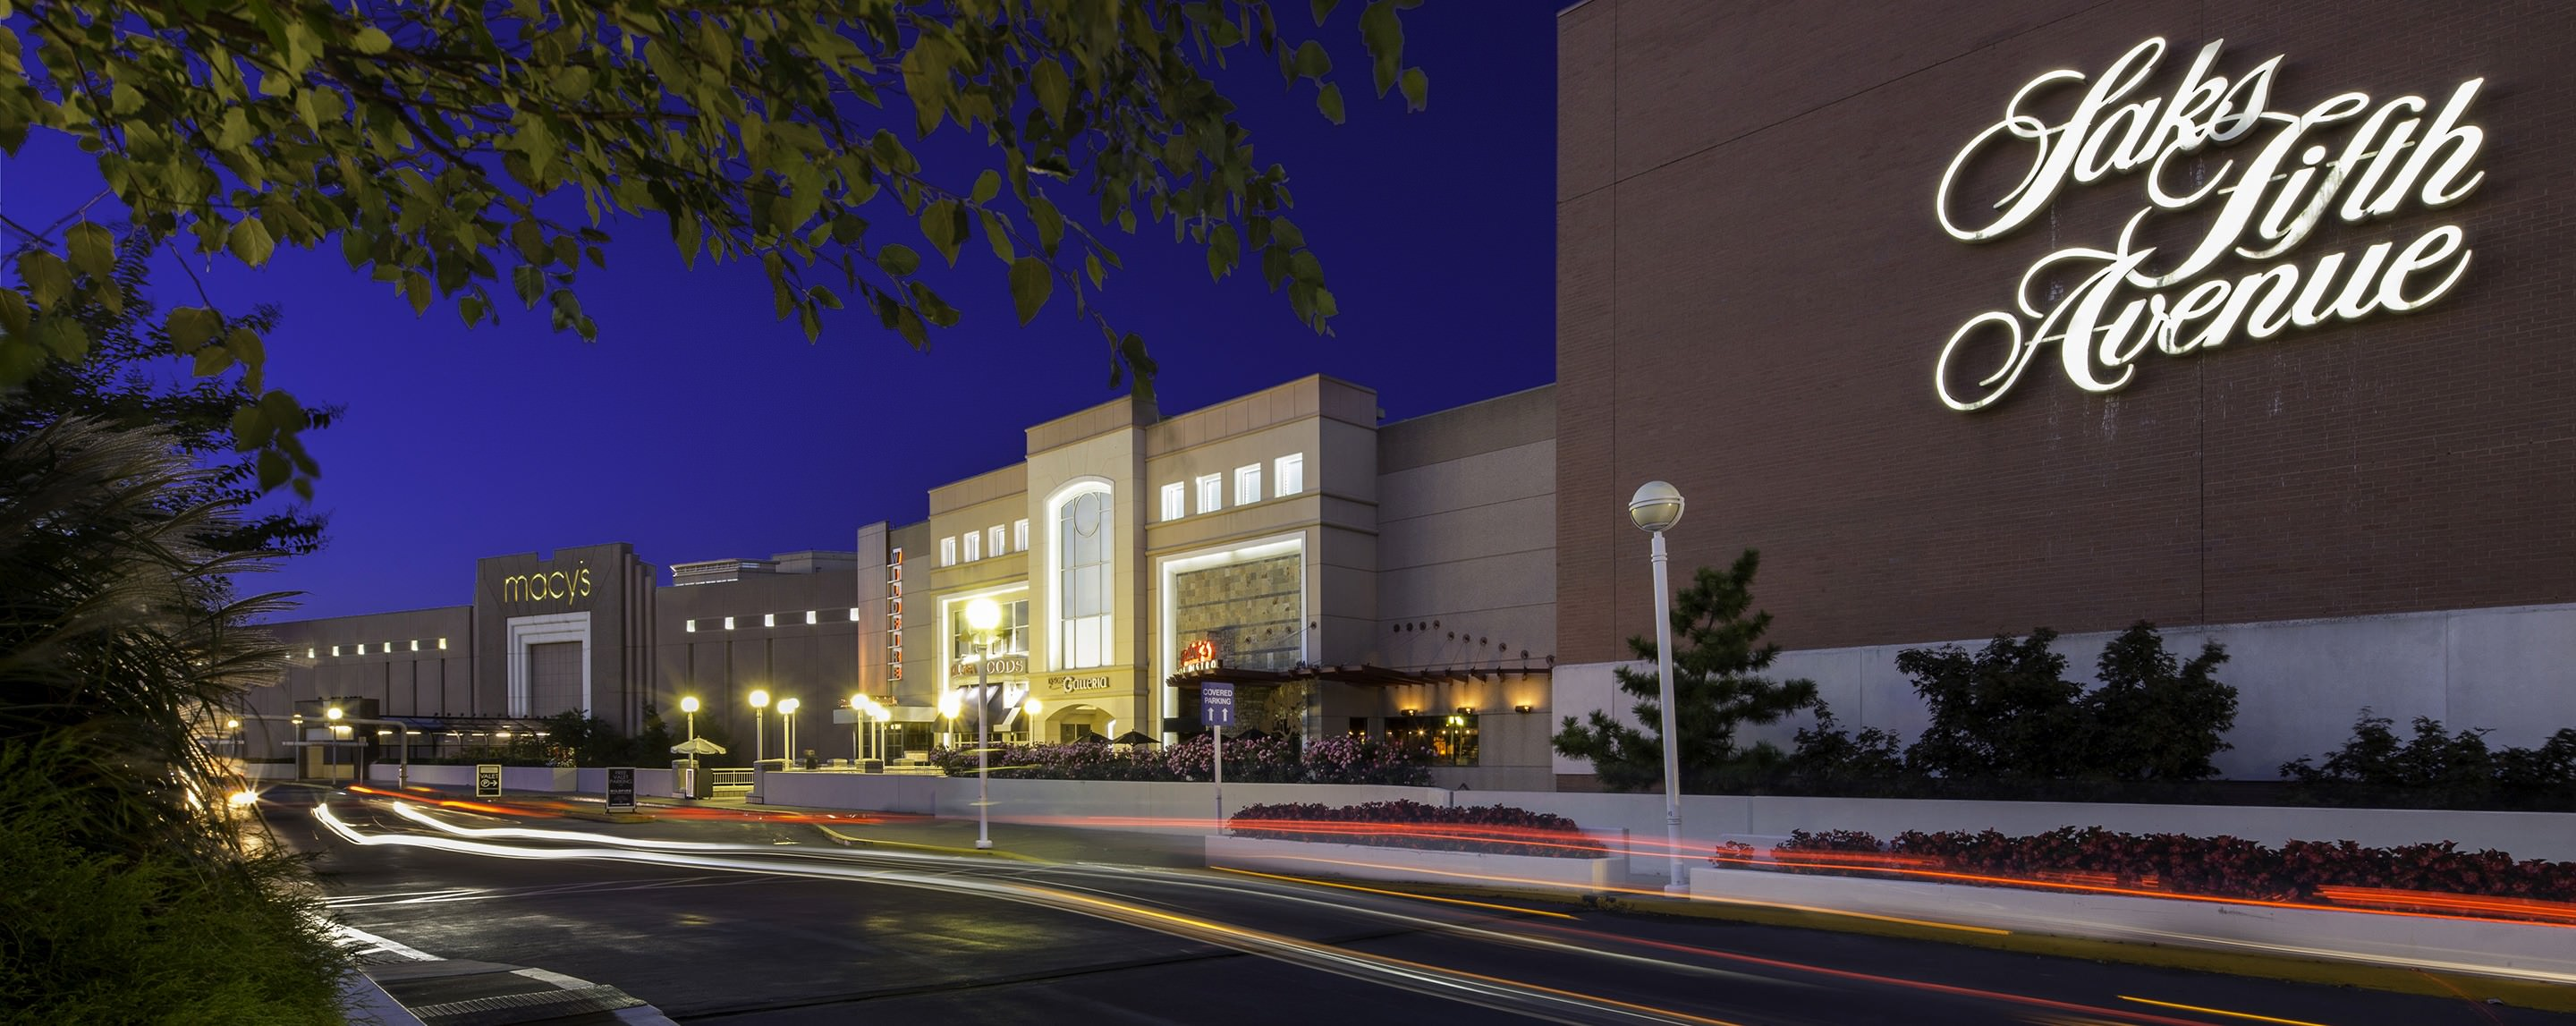 At night, an entrance to Tysons Galleria is illuminated by lights in between two of the centers anchor stores.